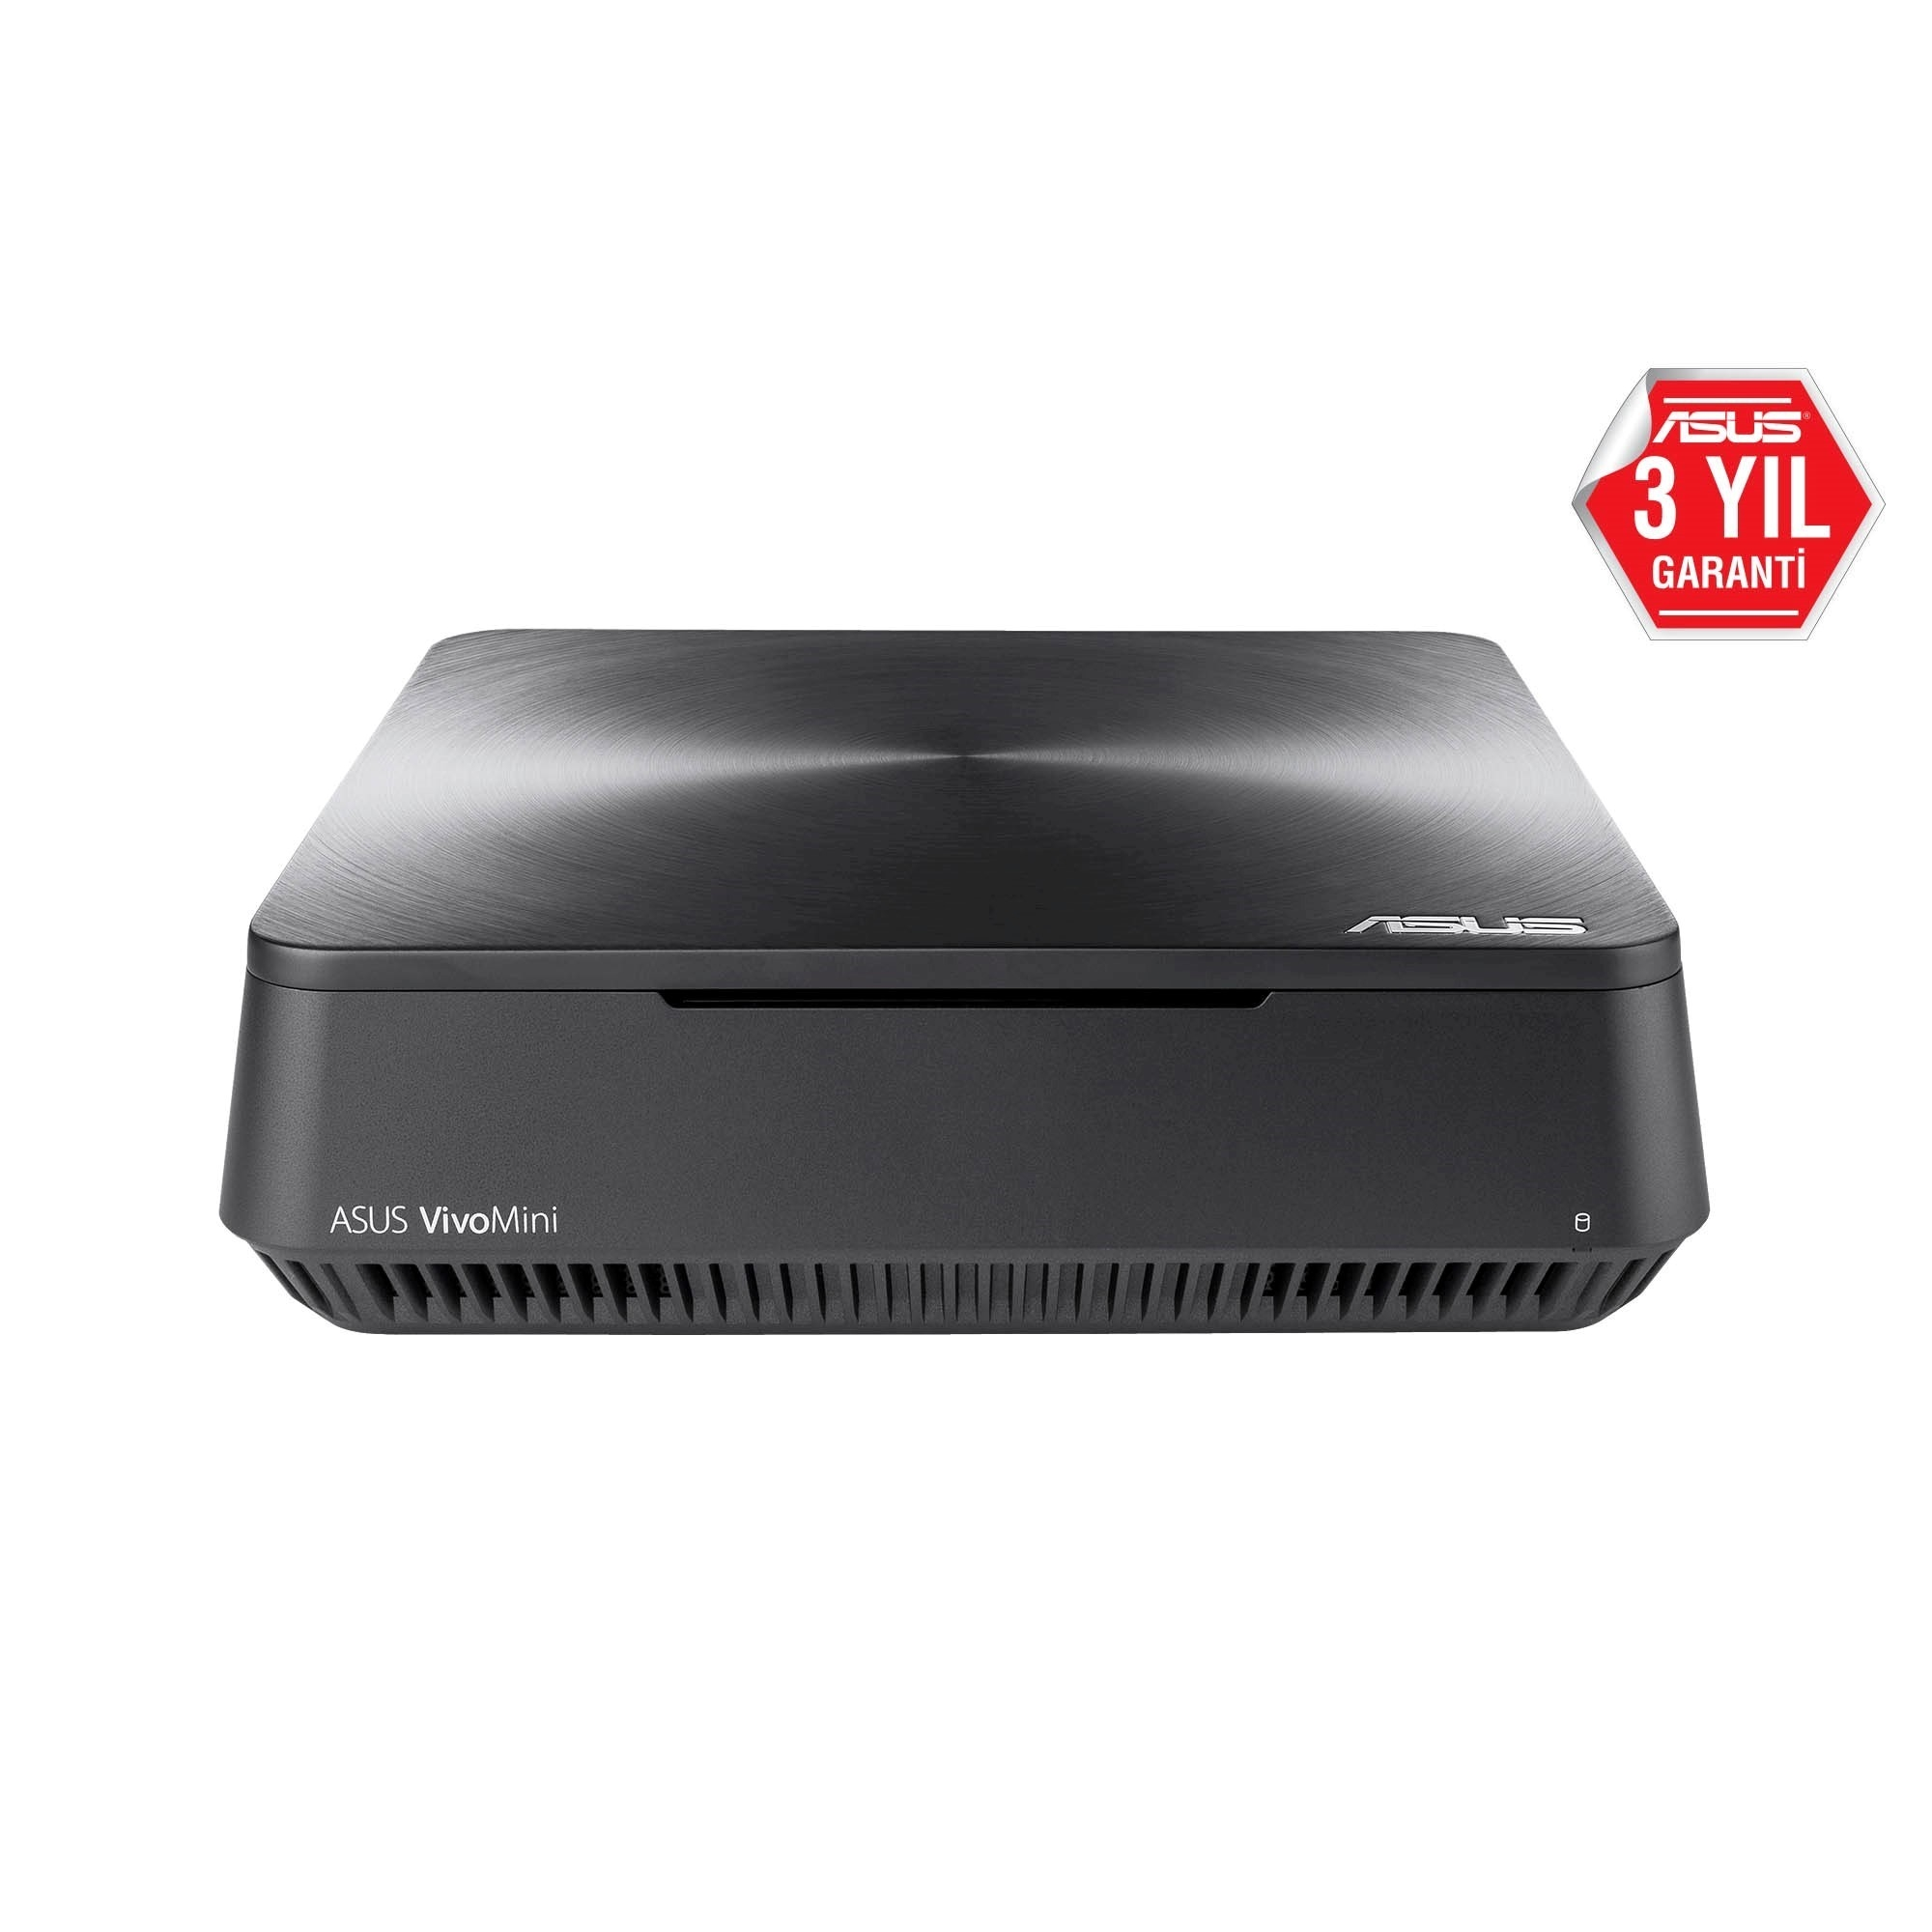 ASUS VIVOMINI VM65-G074M I5-7200U 4GB 1TB O/B HDMI/DP FREEDOS MINI PC